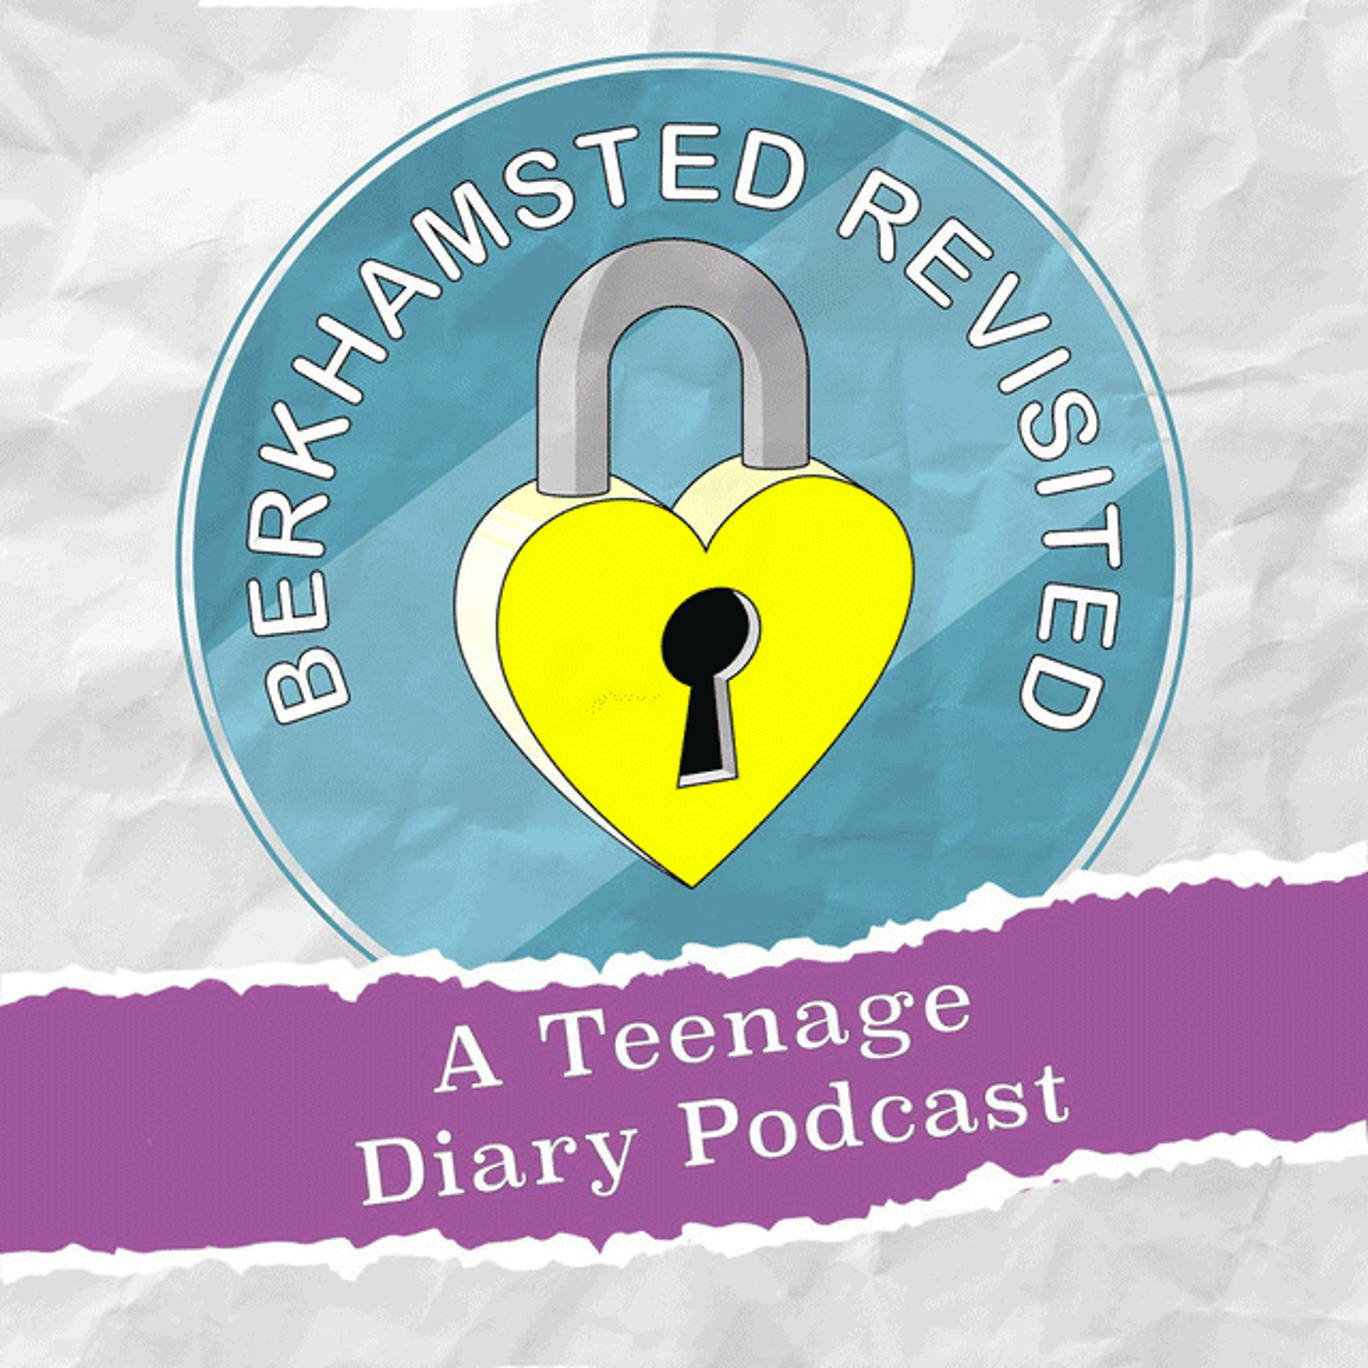 The artwork for the Berkhamsted Revisited: A Teenage Diary Podcast podcast.